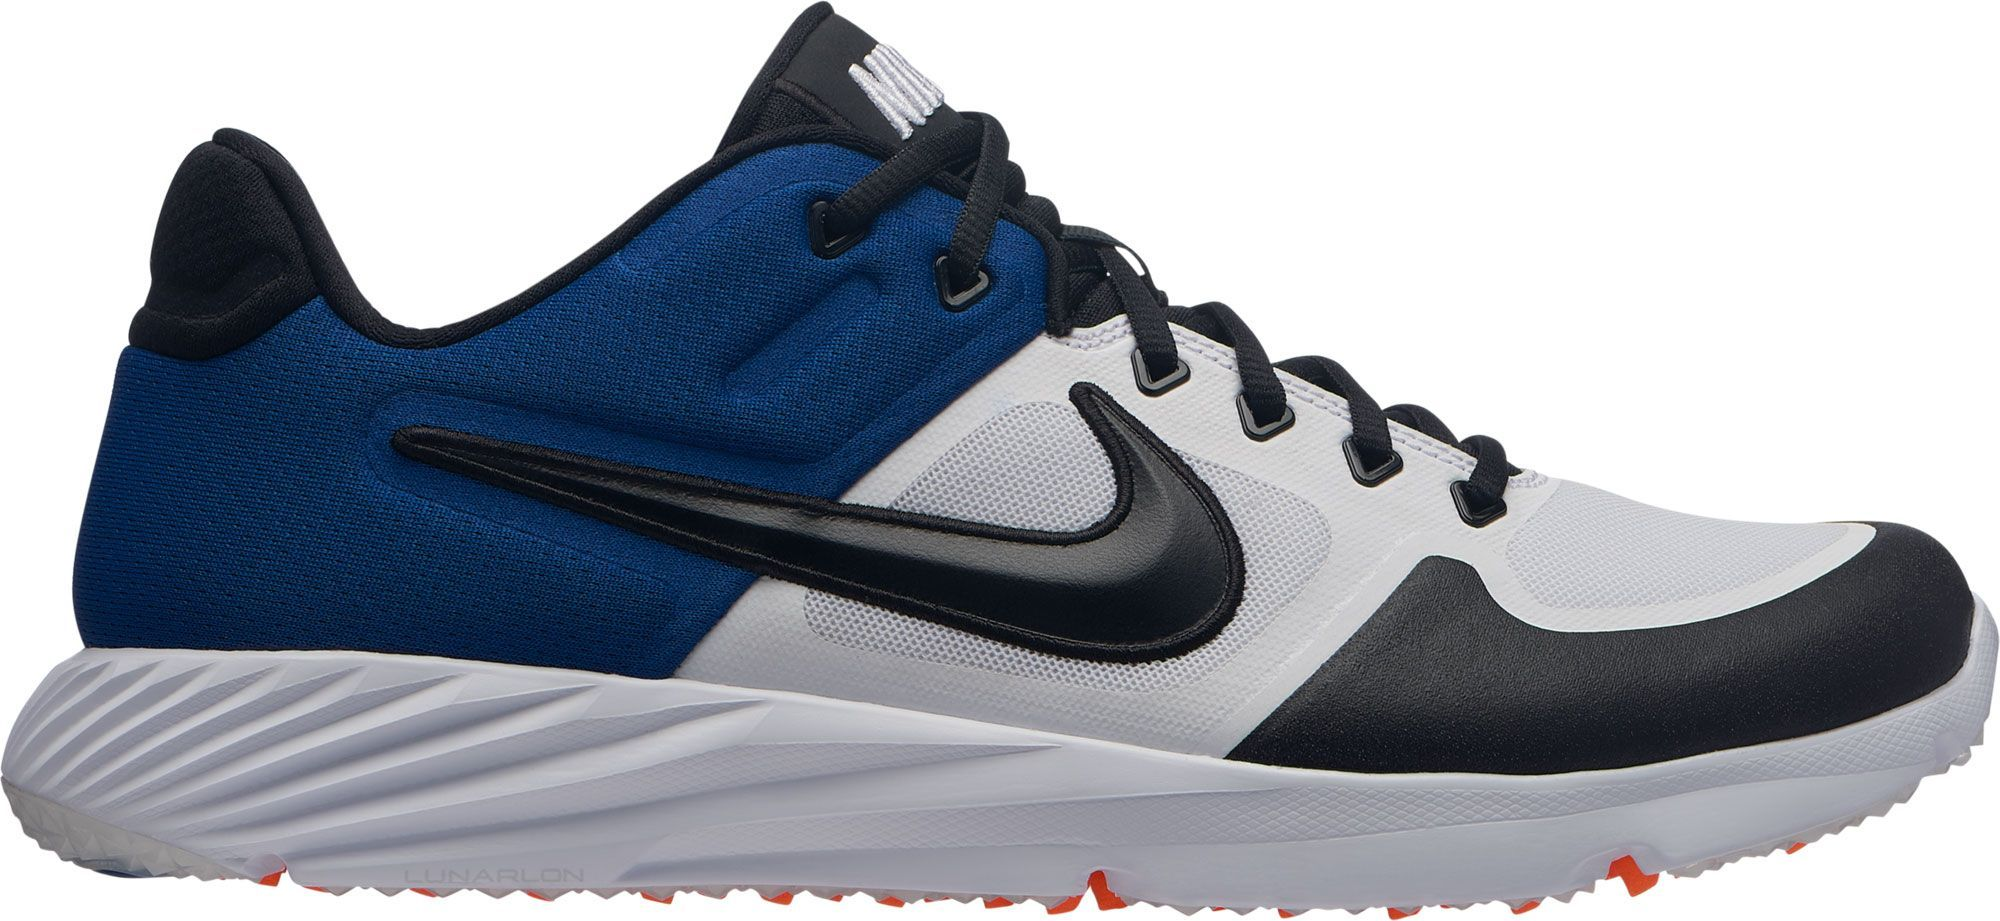 e6ea6d7cac97 Nike Men's Alpha Huarache Elite 2 Turf Baseball Cleats, Size: M13/W14.5,  White